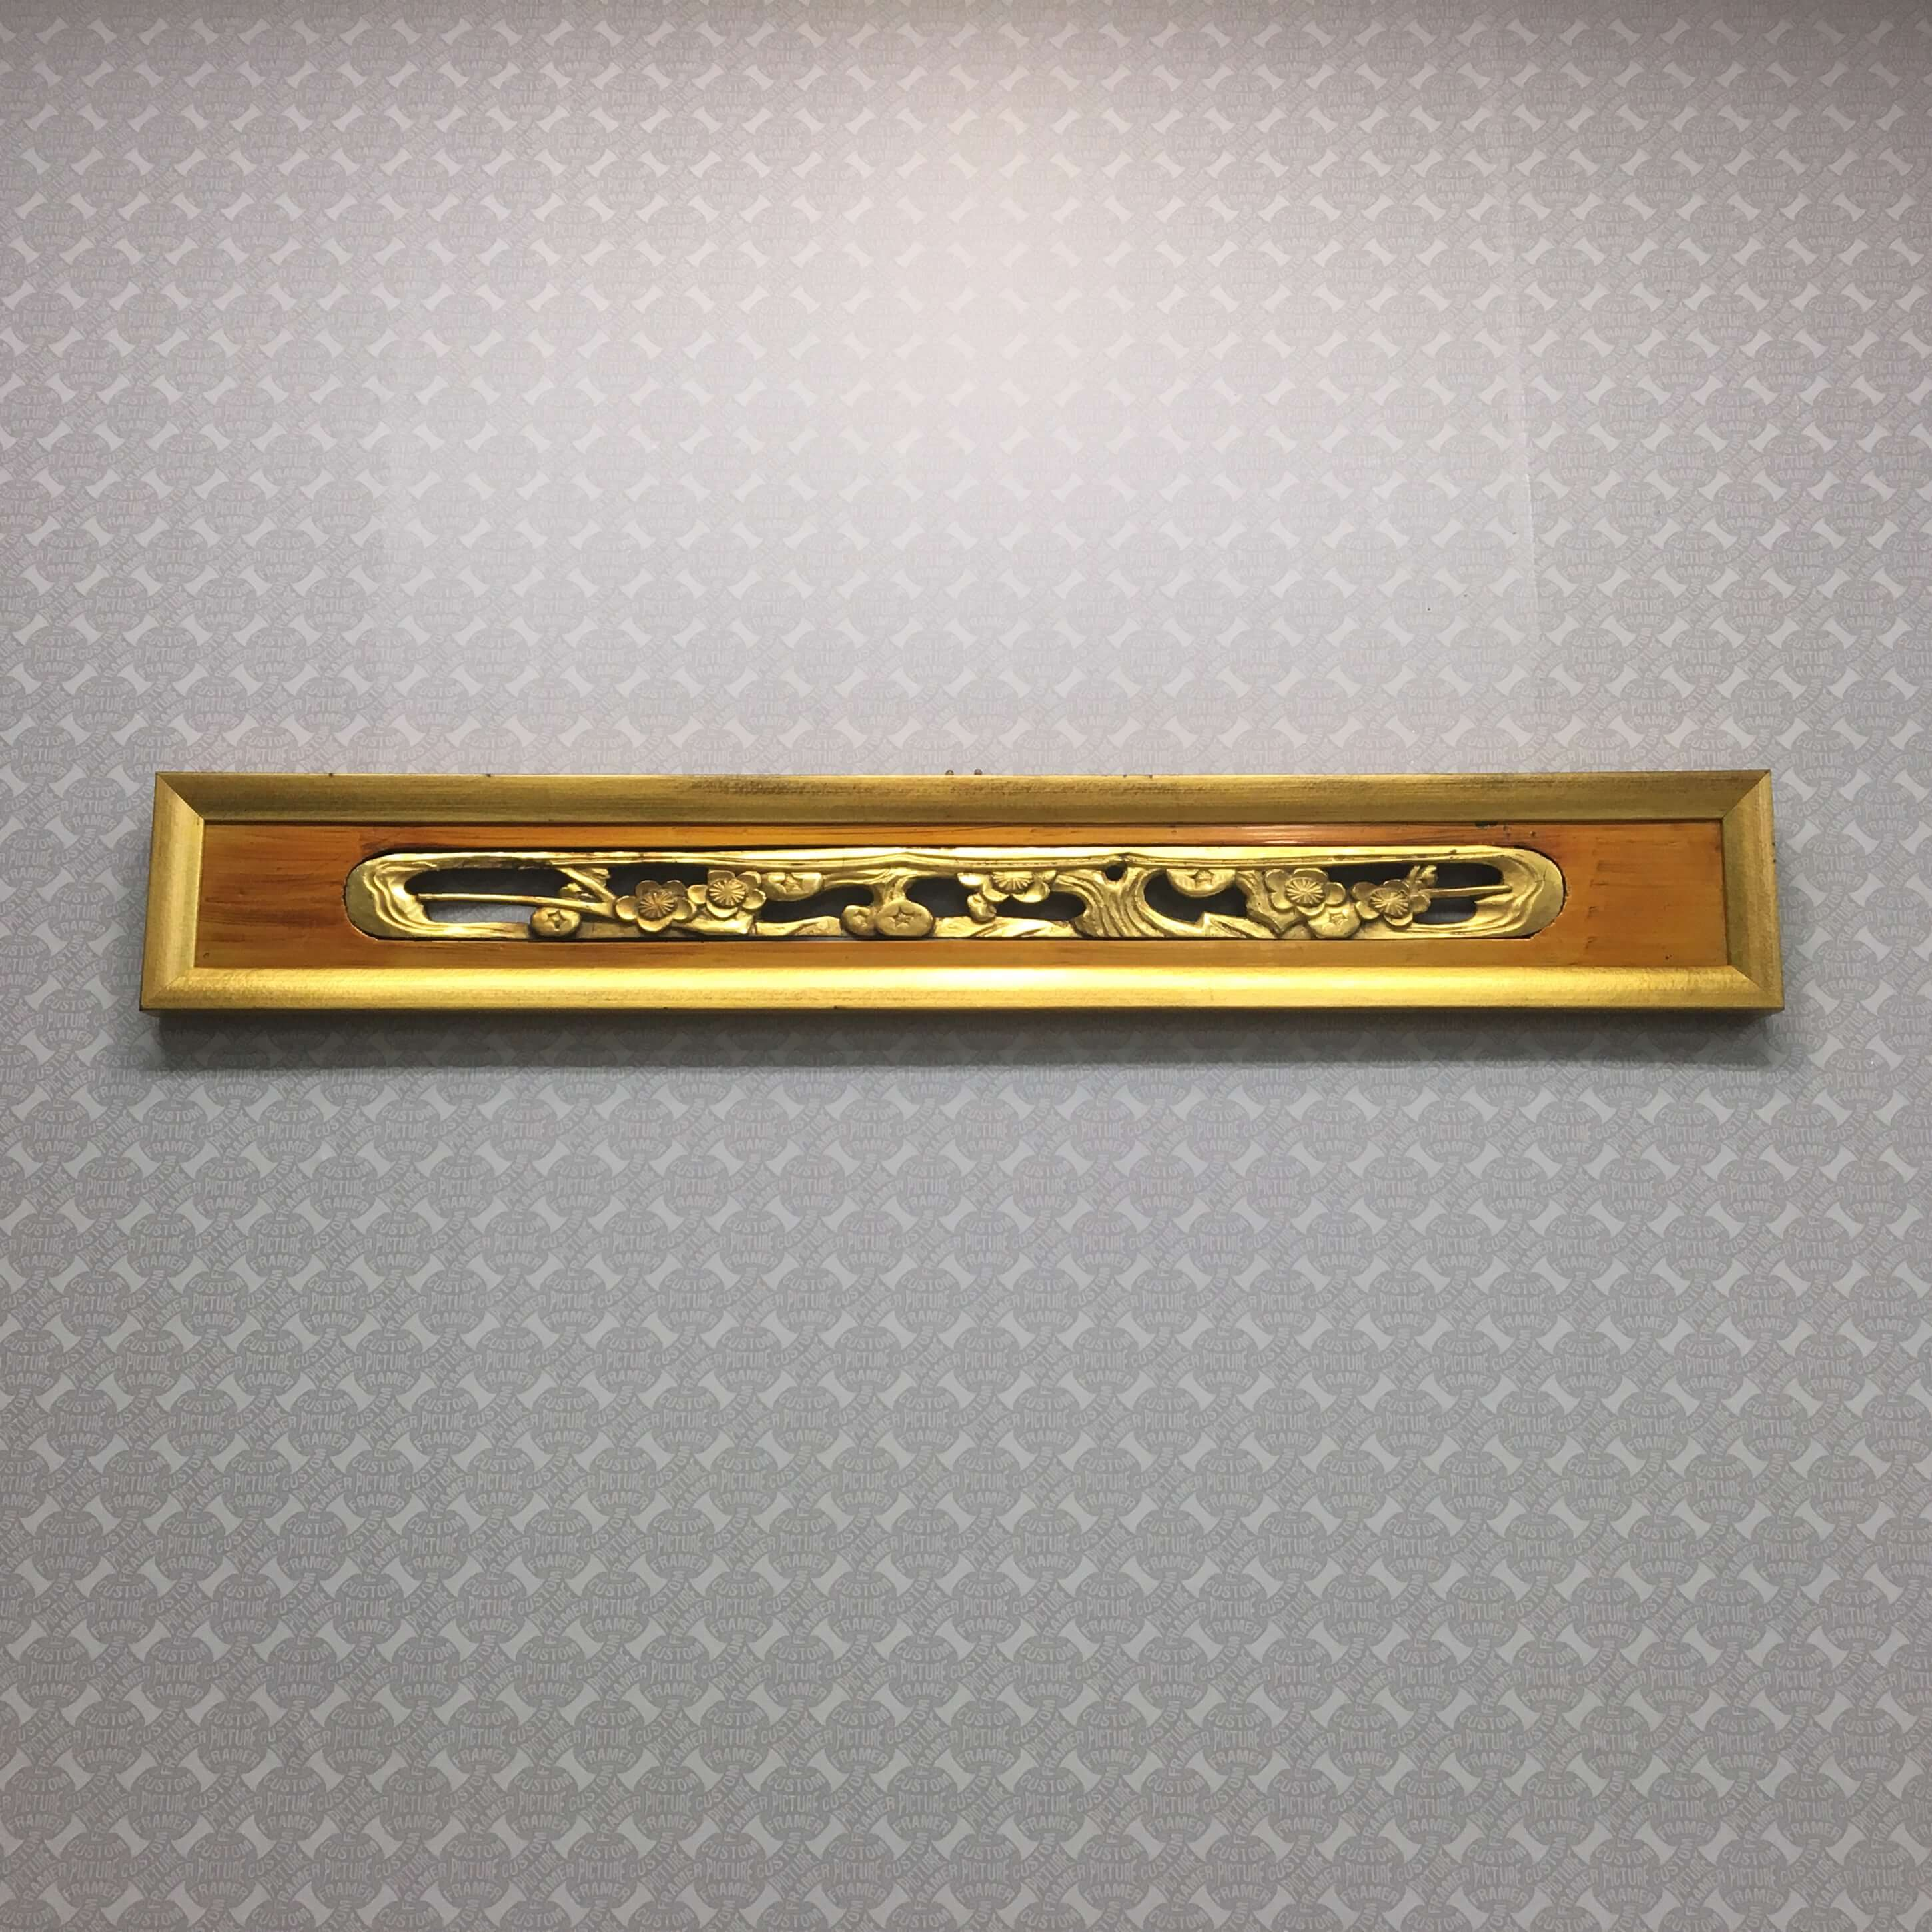 """""""Can you frame this?"""" Pictured is a Japanese transom or """"ranma."""" Ranma were built into a house in between rooms above the doors. This allowed air to flow between rooms. """"Sure...we can frame that!"""" See more custom framing options at our Keswick Village showroom just north of Philadelphia in Glenside PA ( Pennsylvania ) , 19038 . Custom Picture Framer of Glenside carries thousands of frame styles, prints, maps, limited editions, mirrors, and more!"""